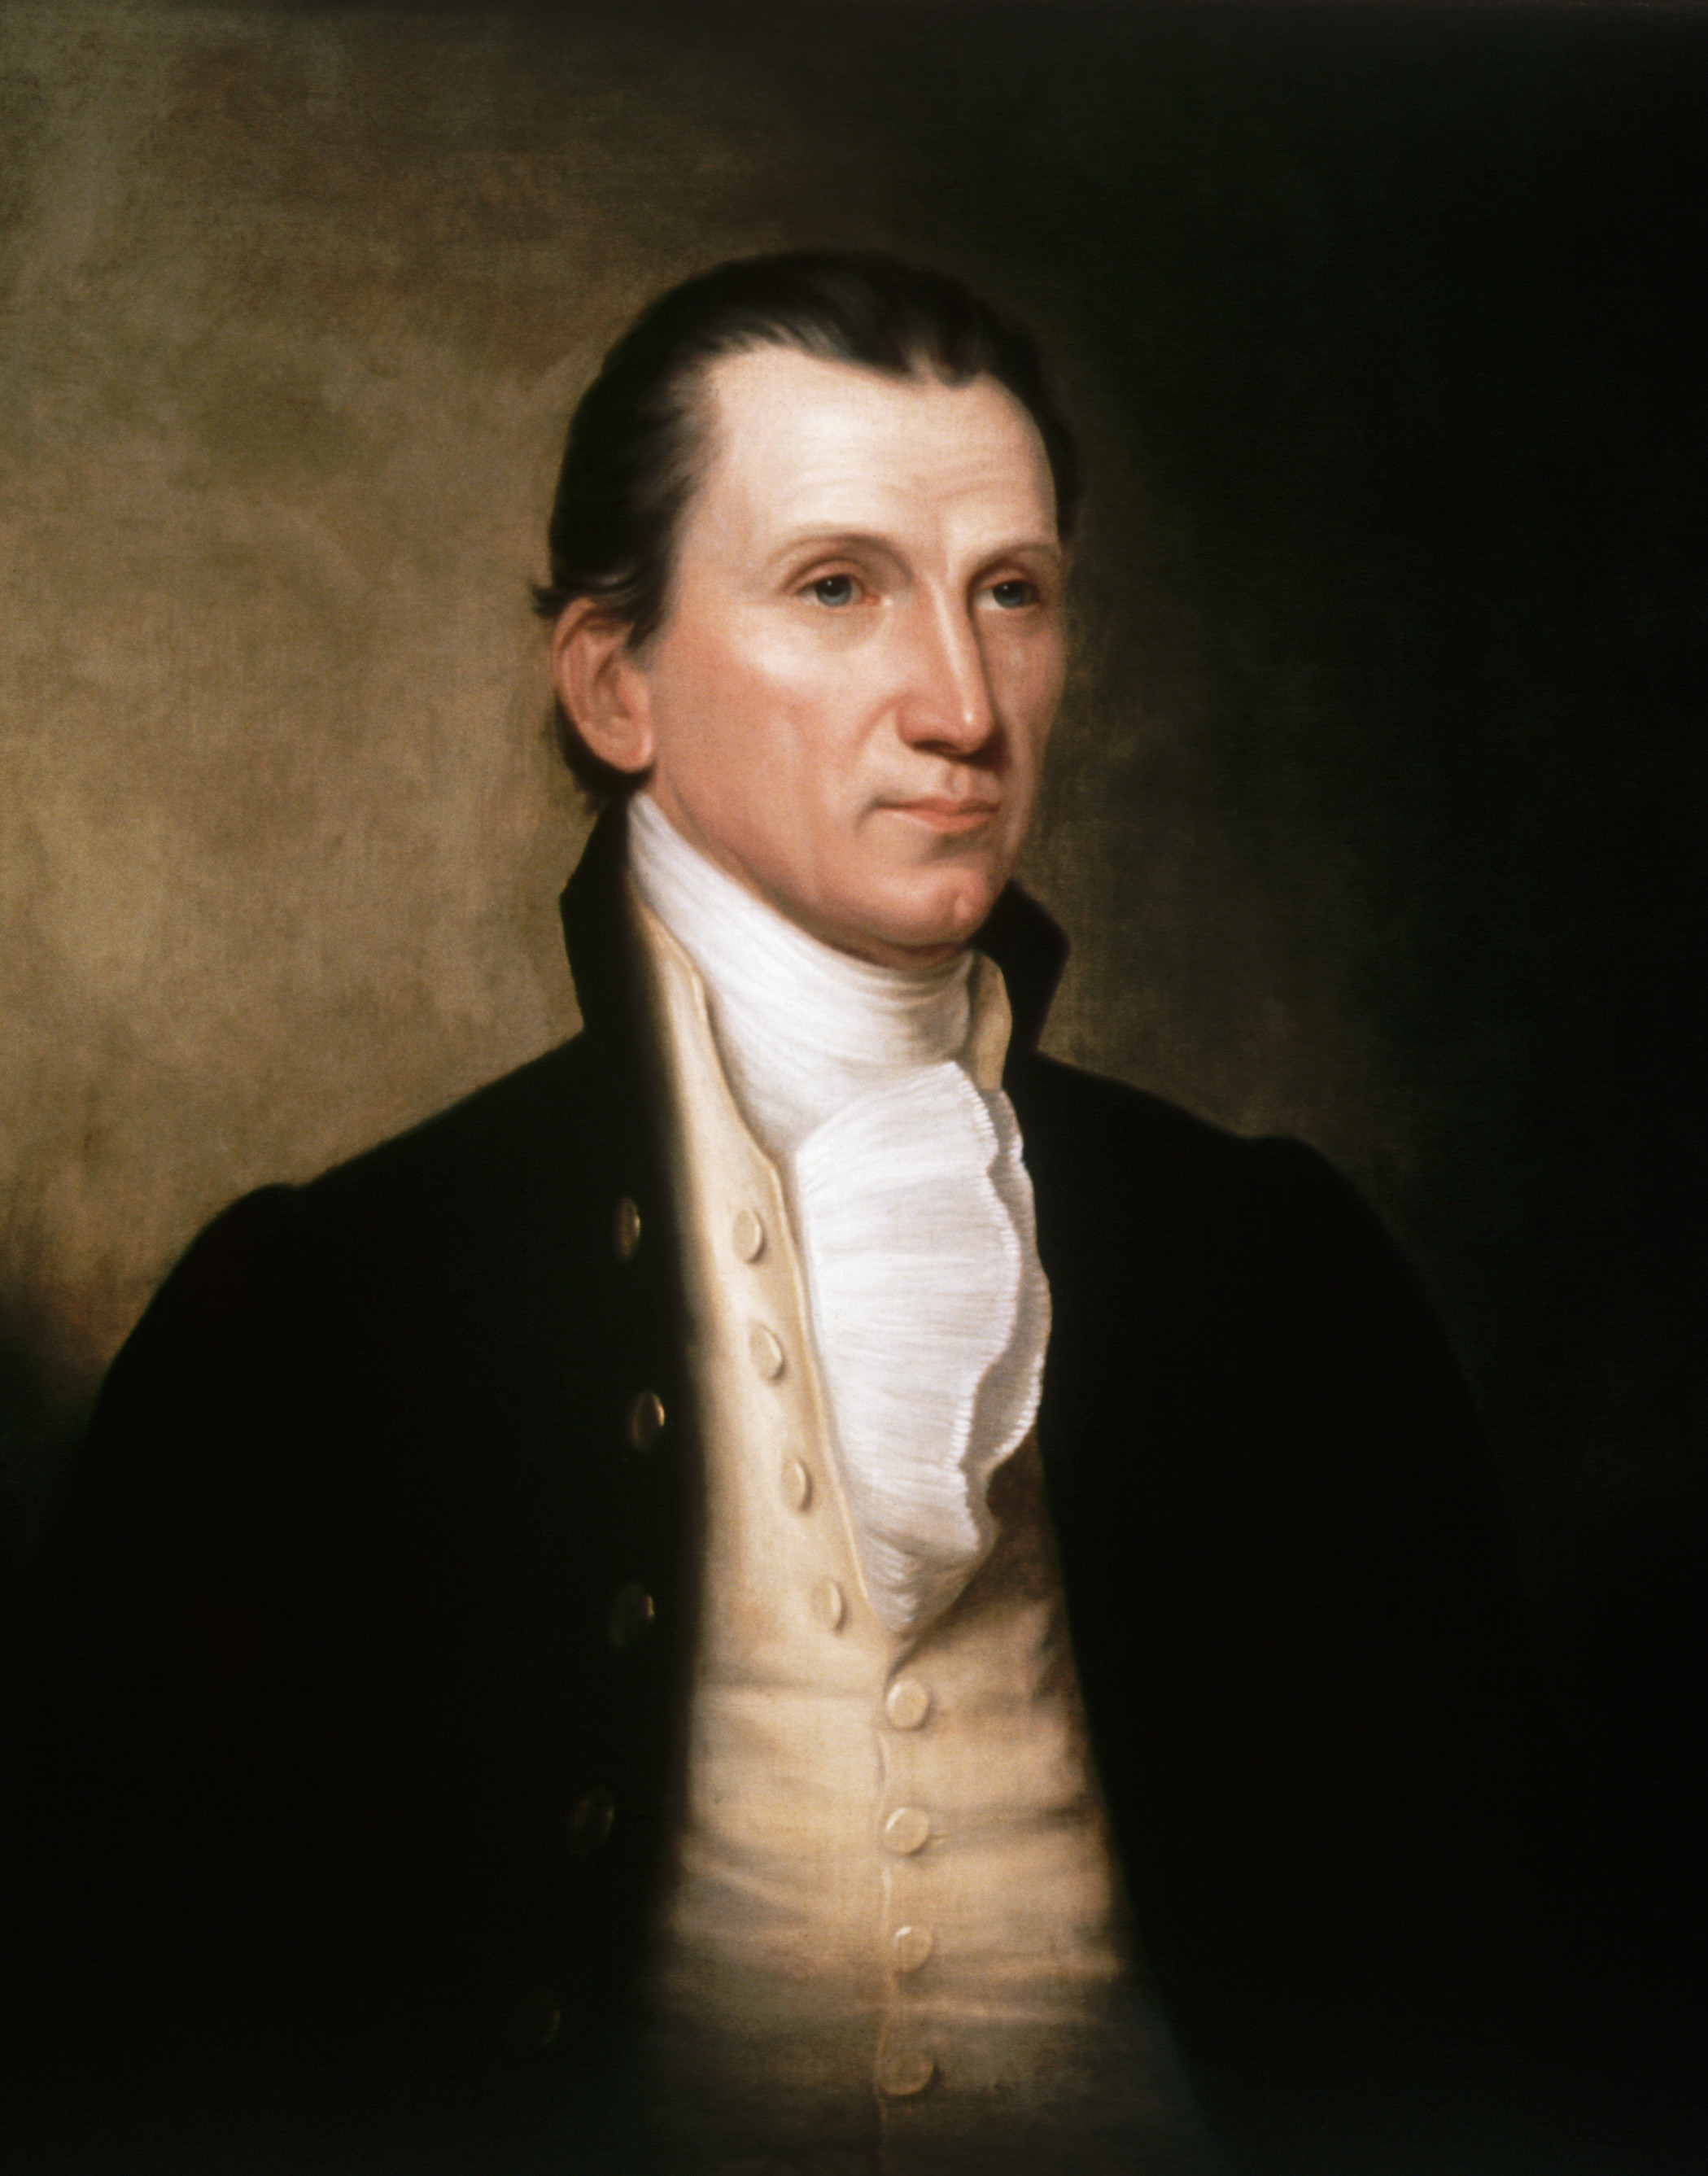 james monroe Browse through james monroe's poems and quotes 0 poems of james monroe phenomenal woman, still i rise, the road not taken, if you forget me, dreams james monroe (april 28, 1758 – july 4.